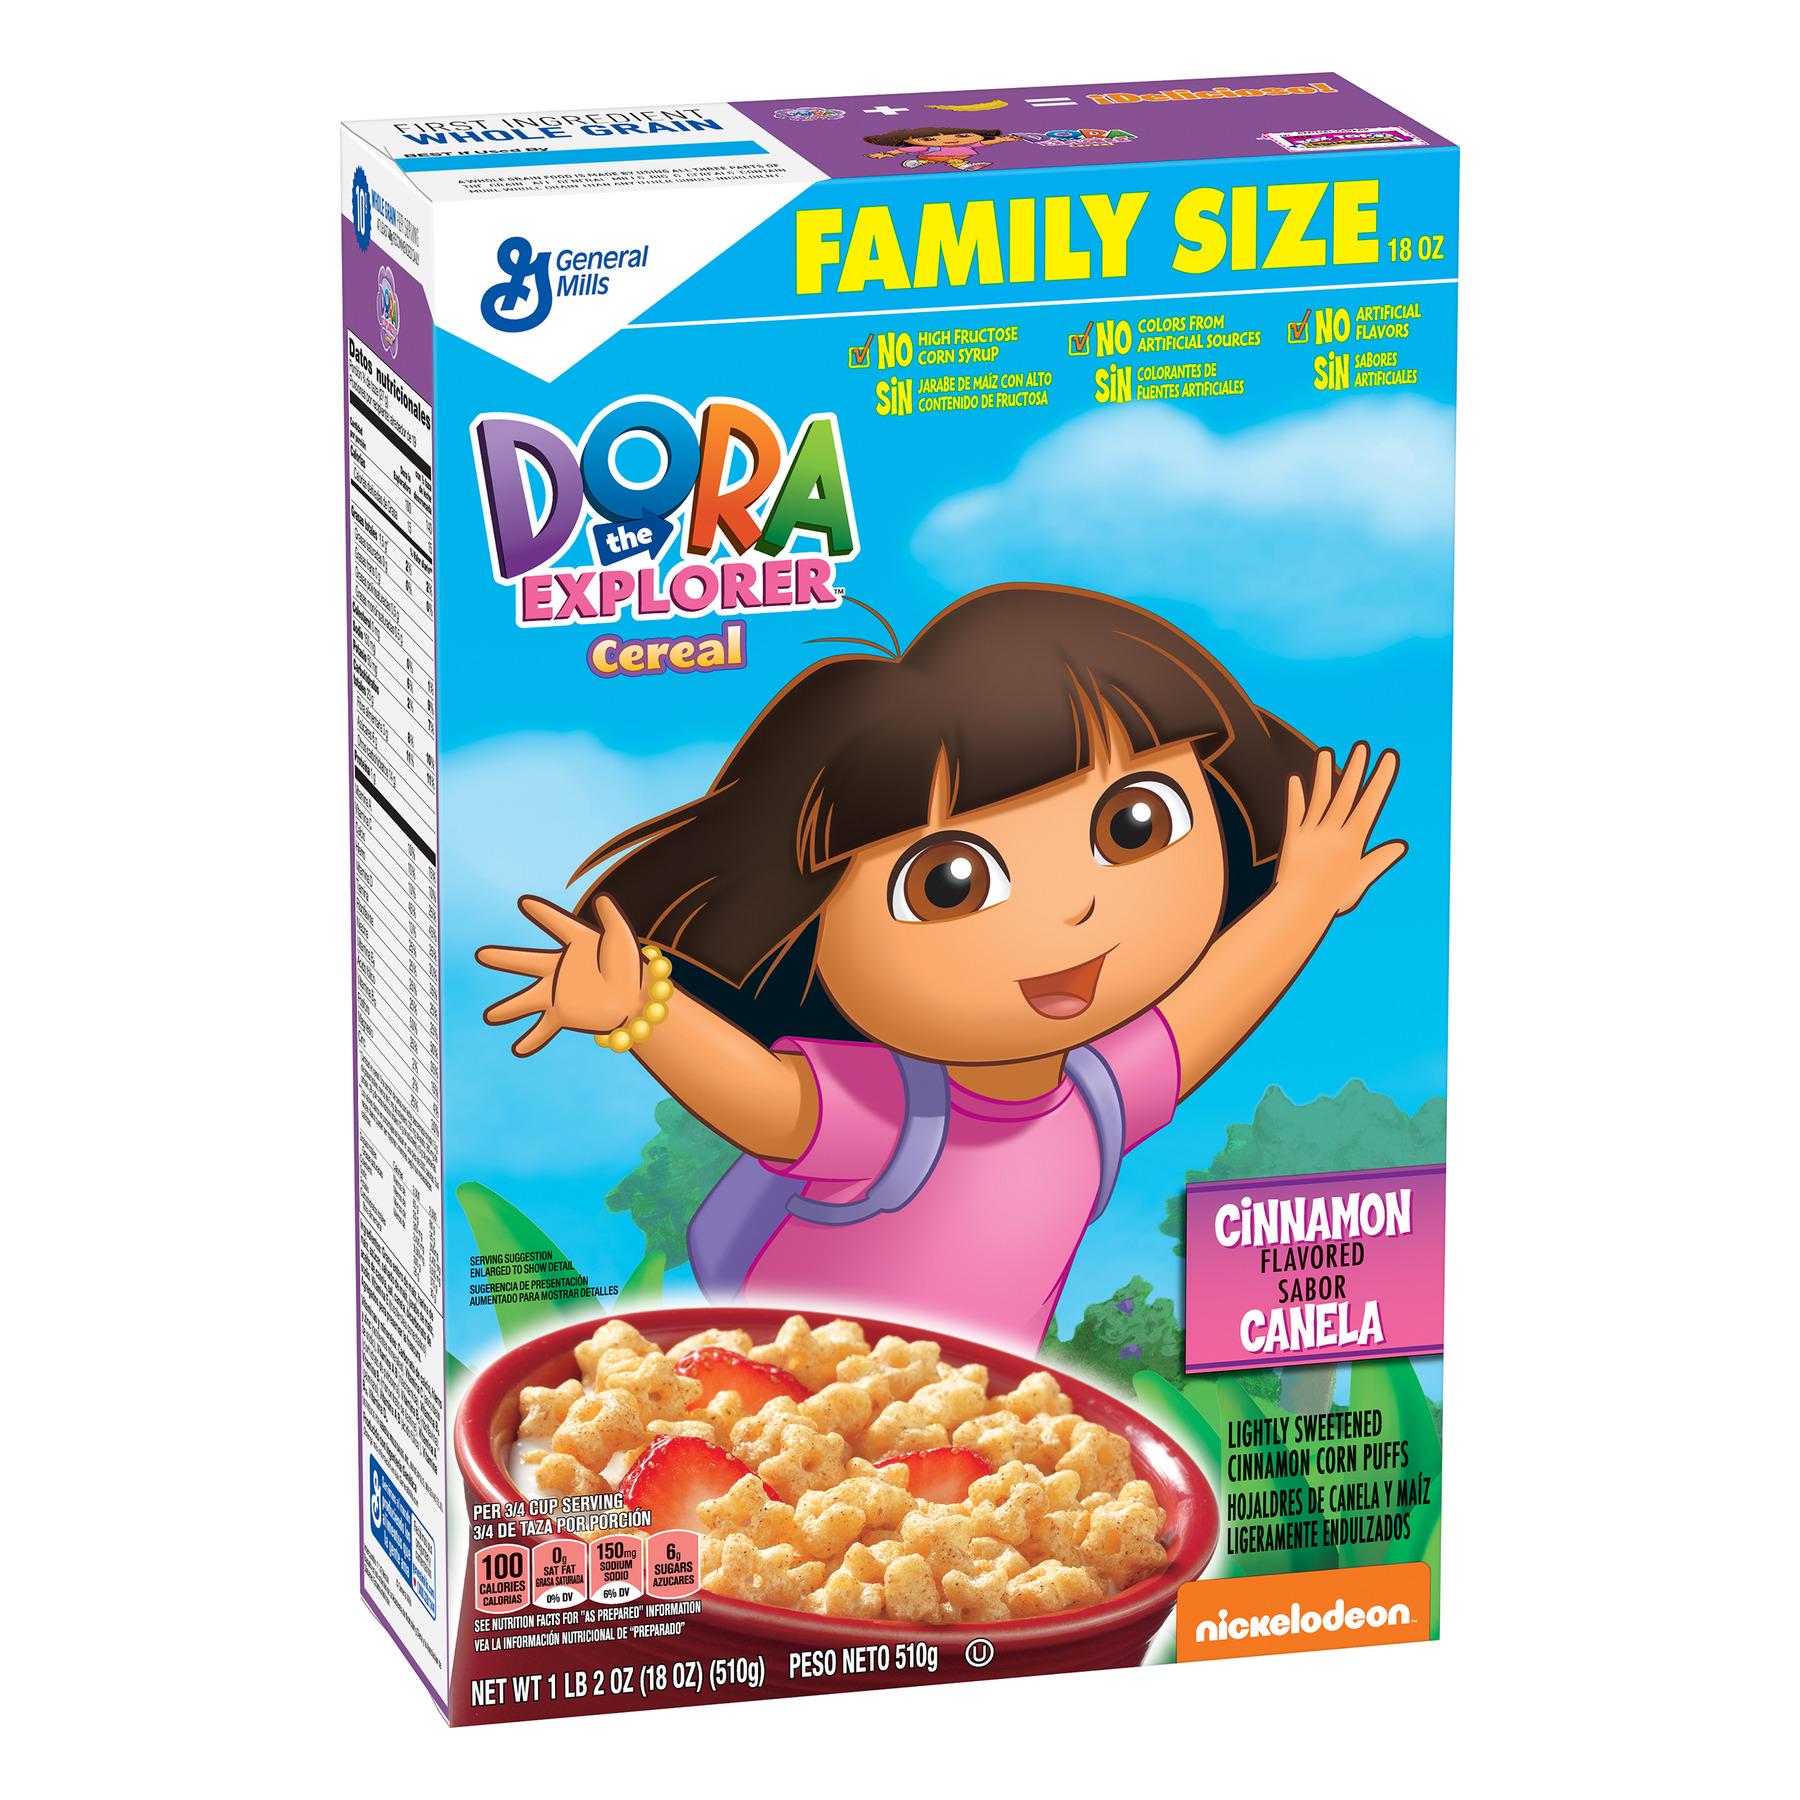 Dora The Explorer Breakfast Cereal, 18 oz Box